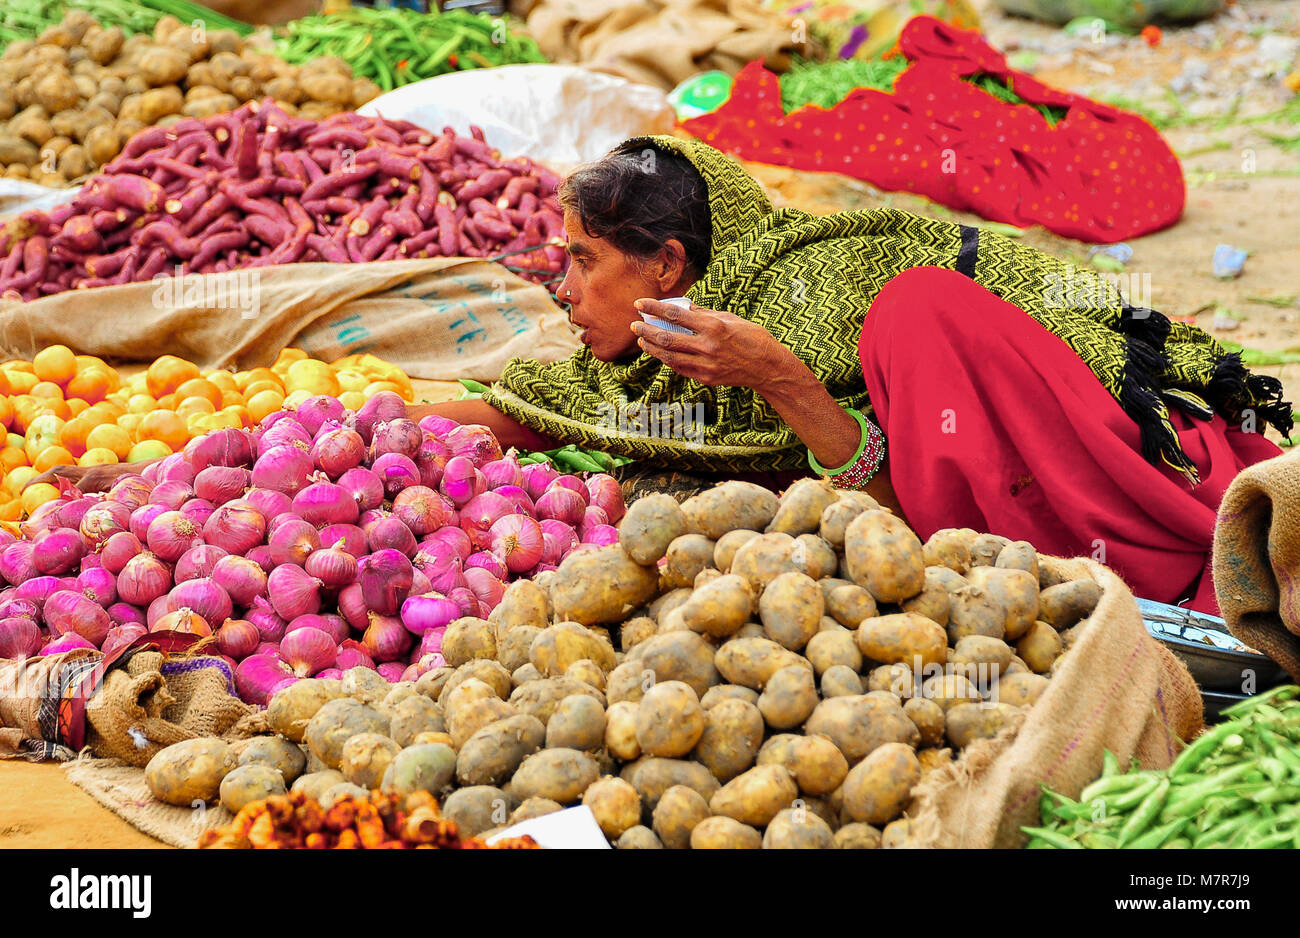 Jaipur, India: Colourful array of fresh vegetables at a traditional indian roadside market. Local woman is seated - Stock Image